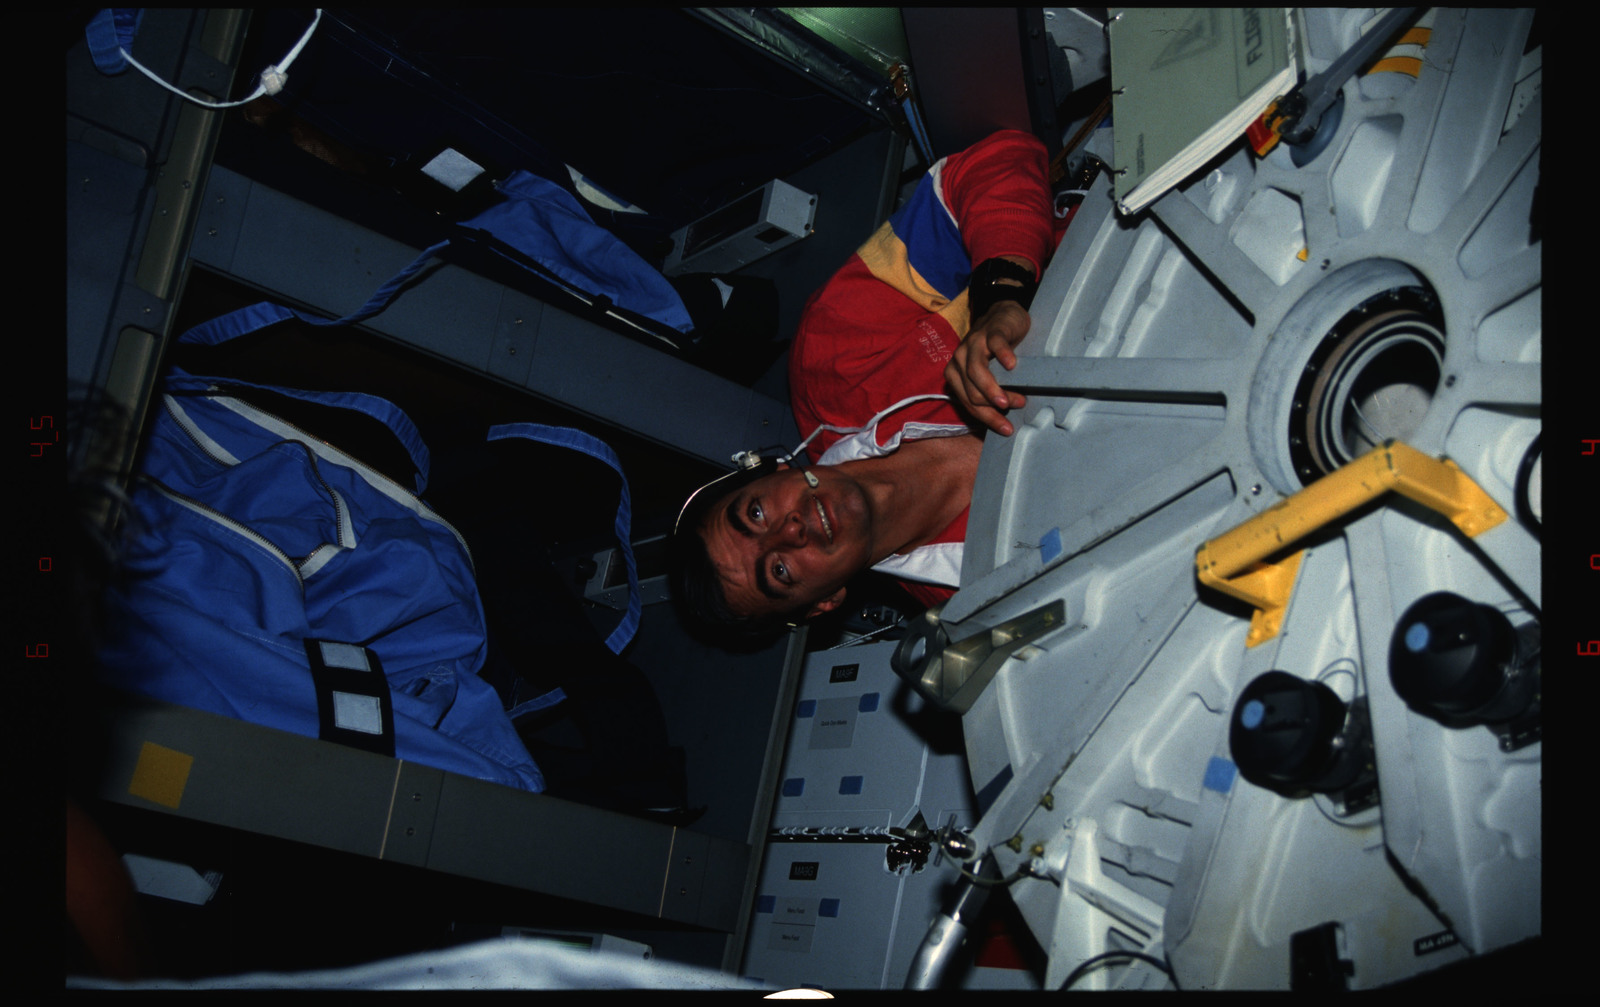 S46-04-009 - STS-046 - Pilot Allen peers into the OV-104 middeck from behind the Airlock hatch